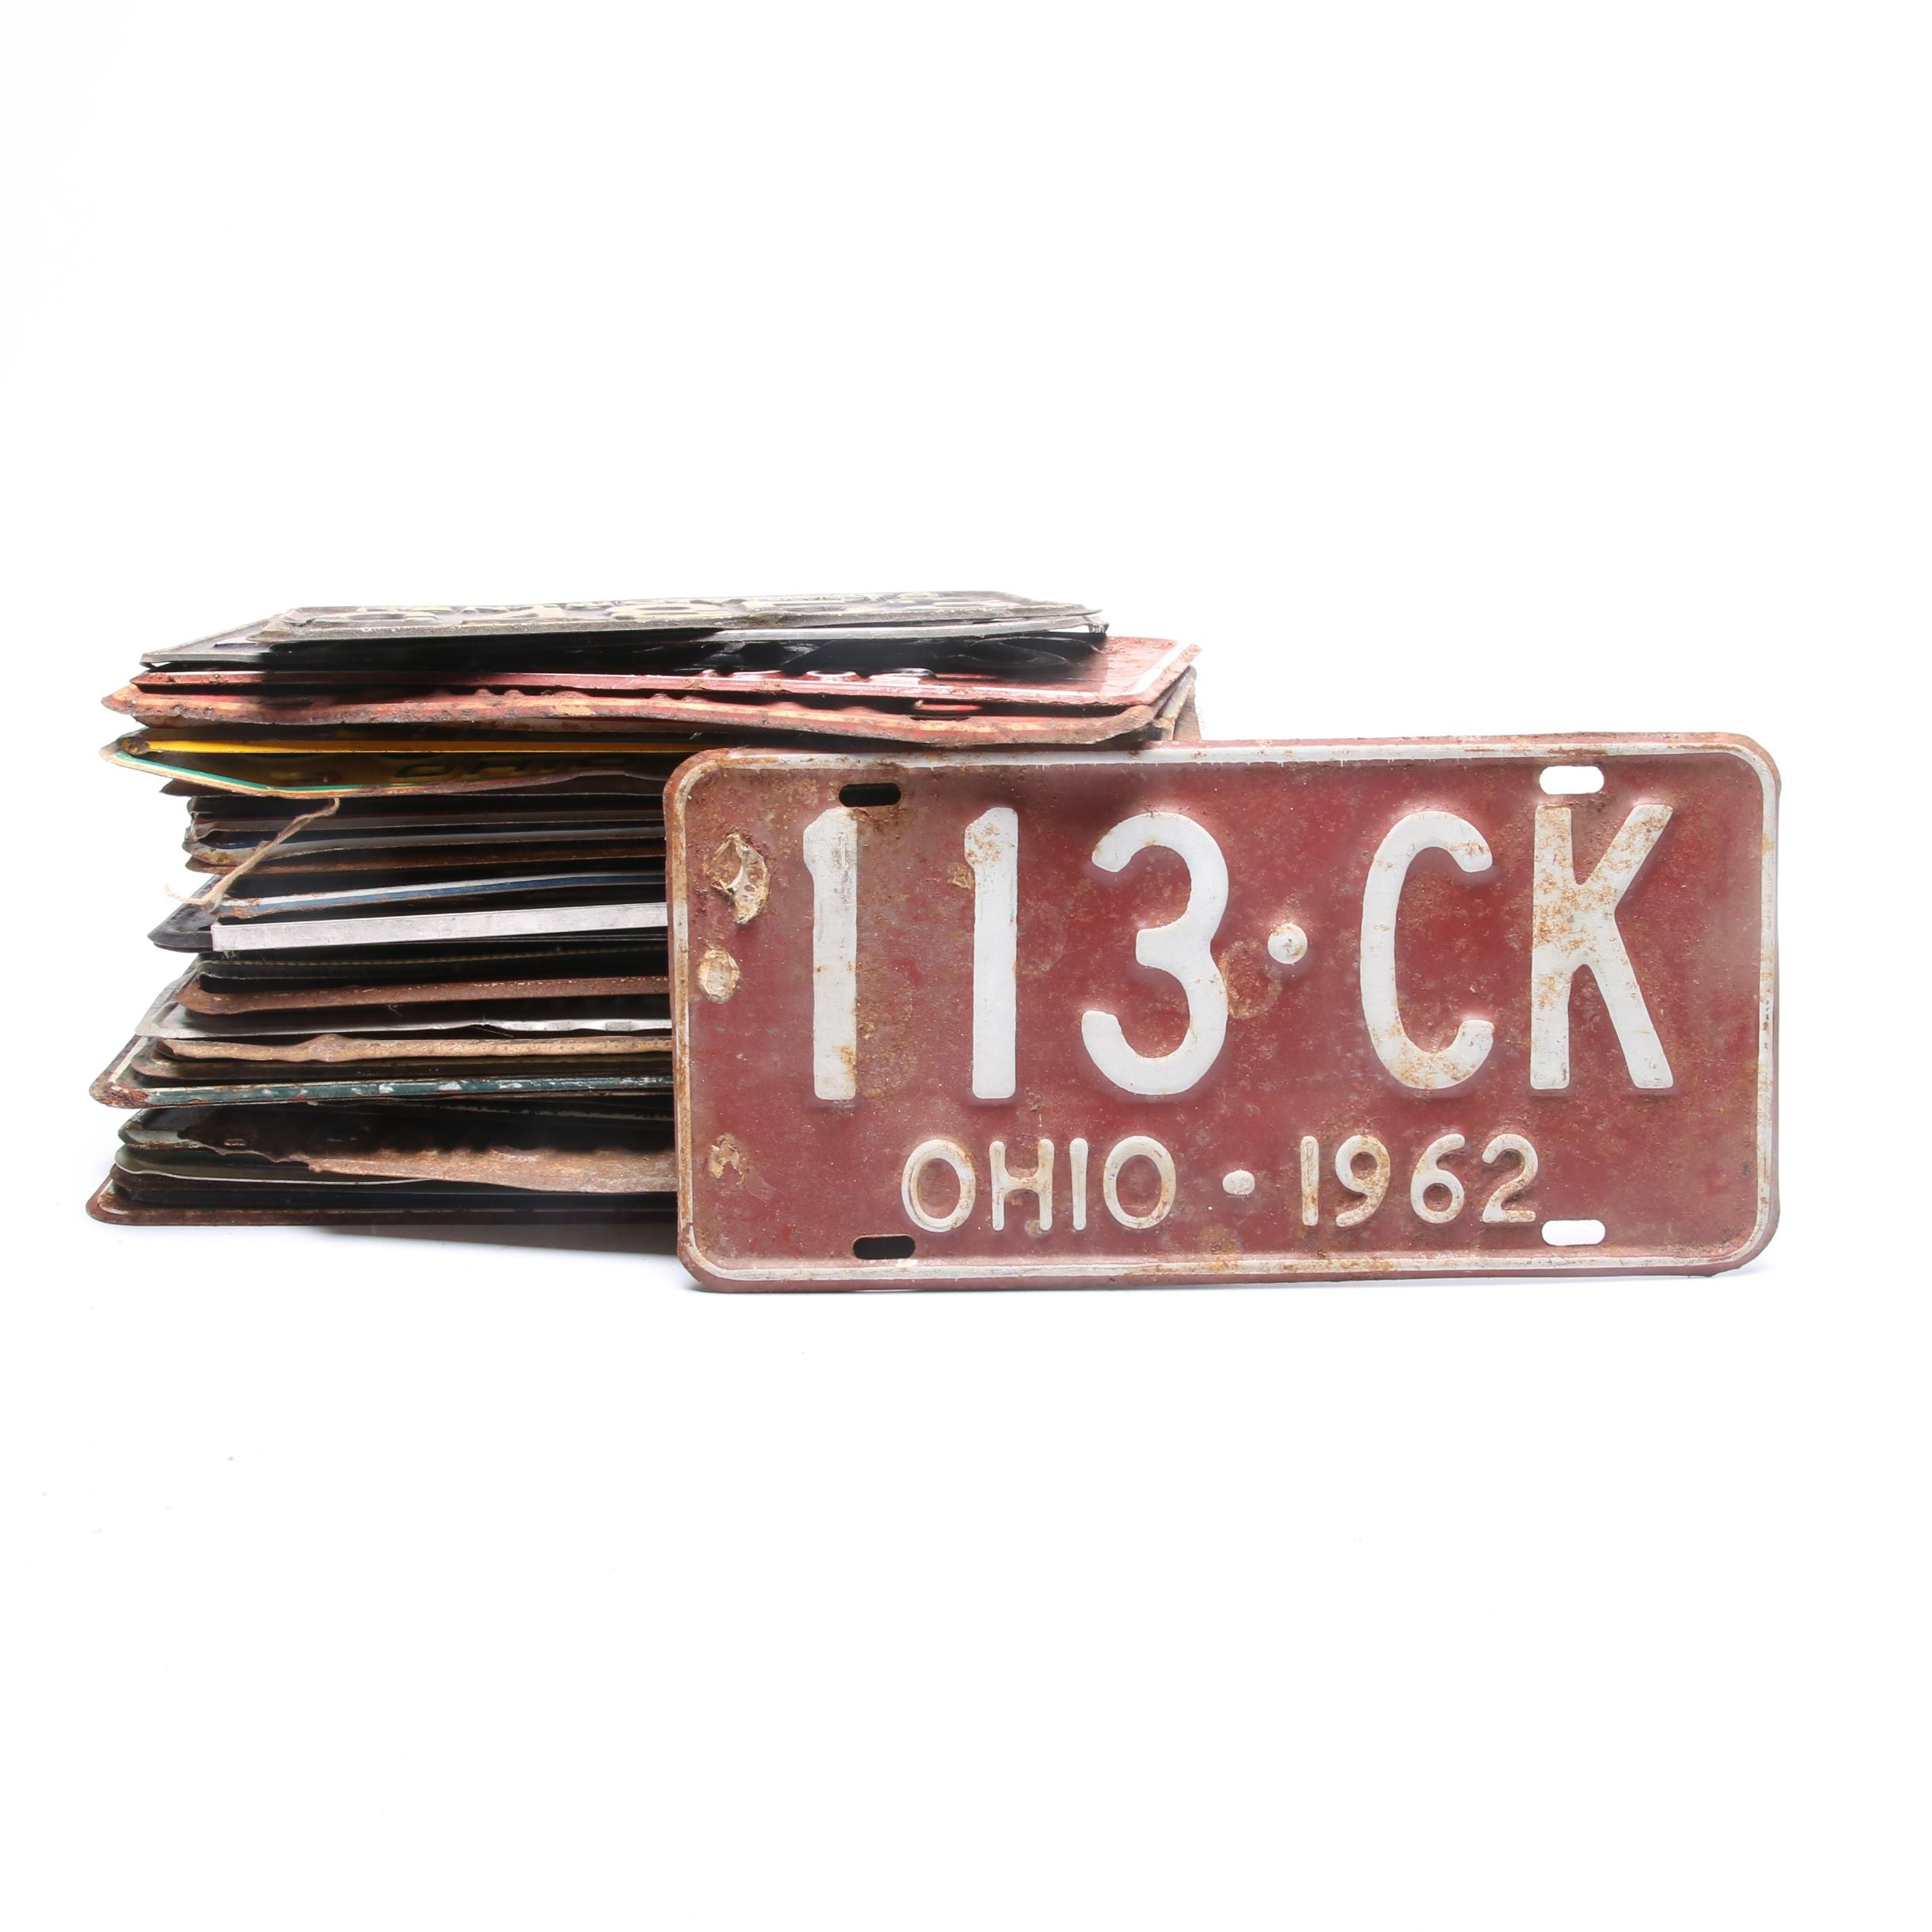 Vintage License Plate Collection Including Ohio and Kentucky